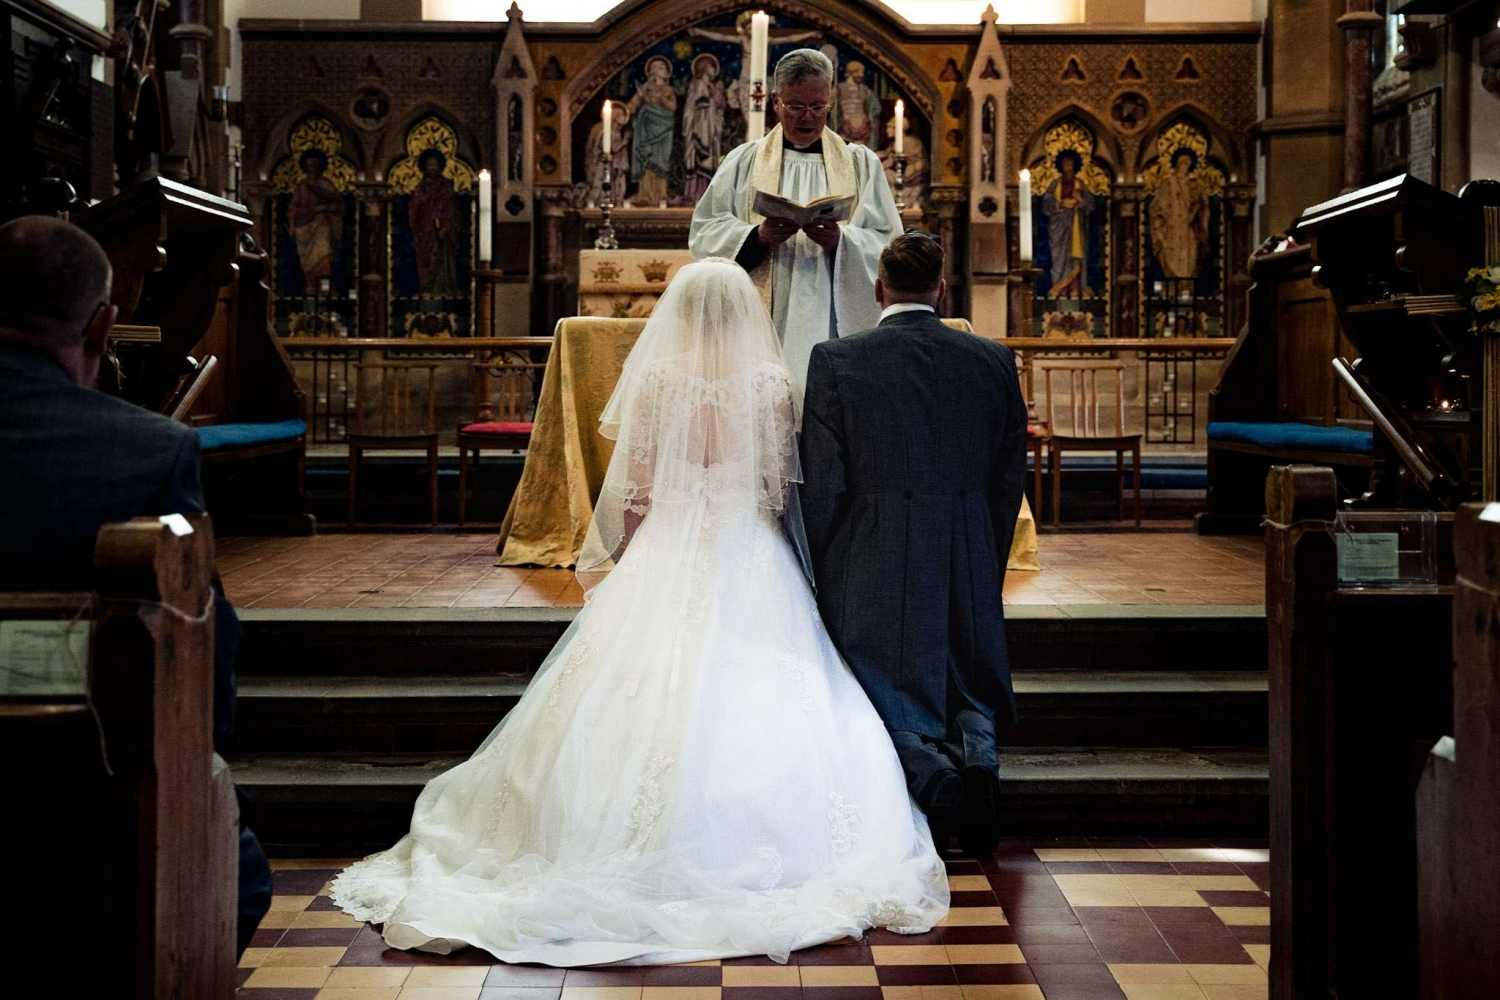 A bride and groom kneeling before a vicar in church